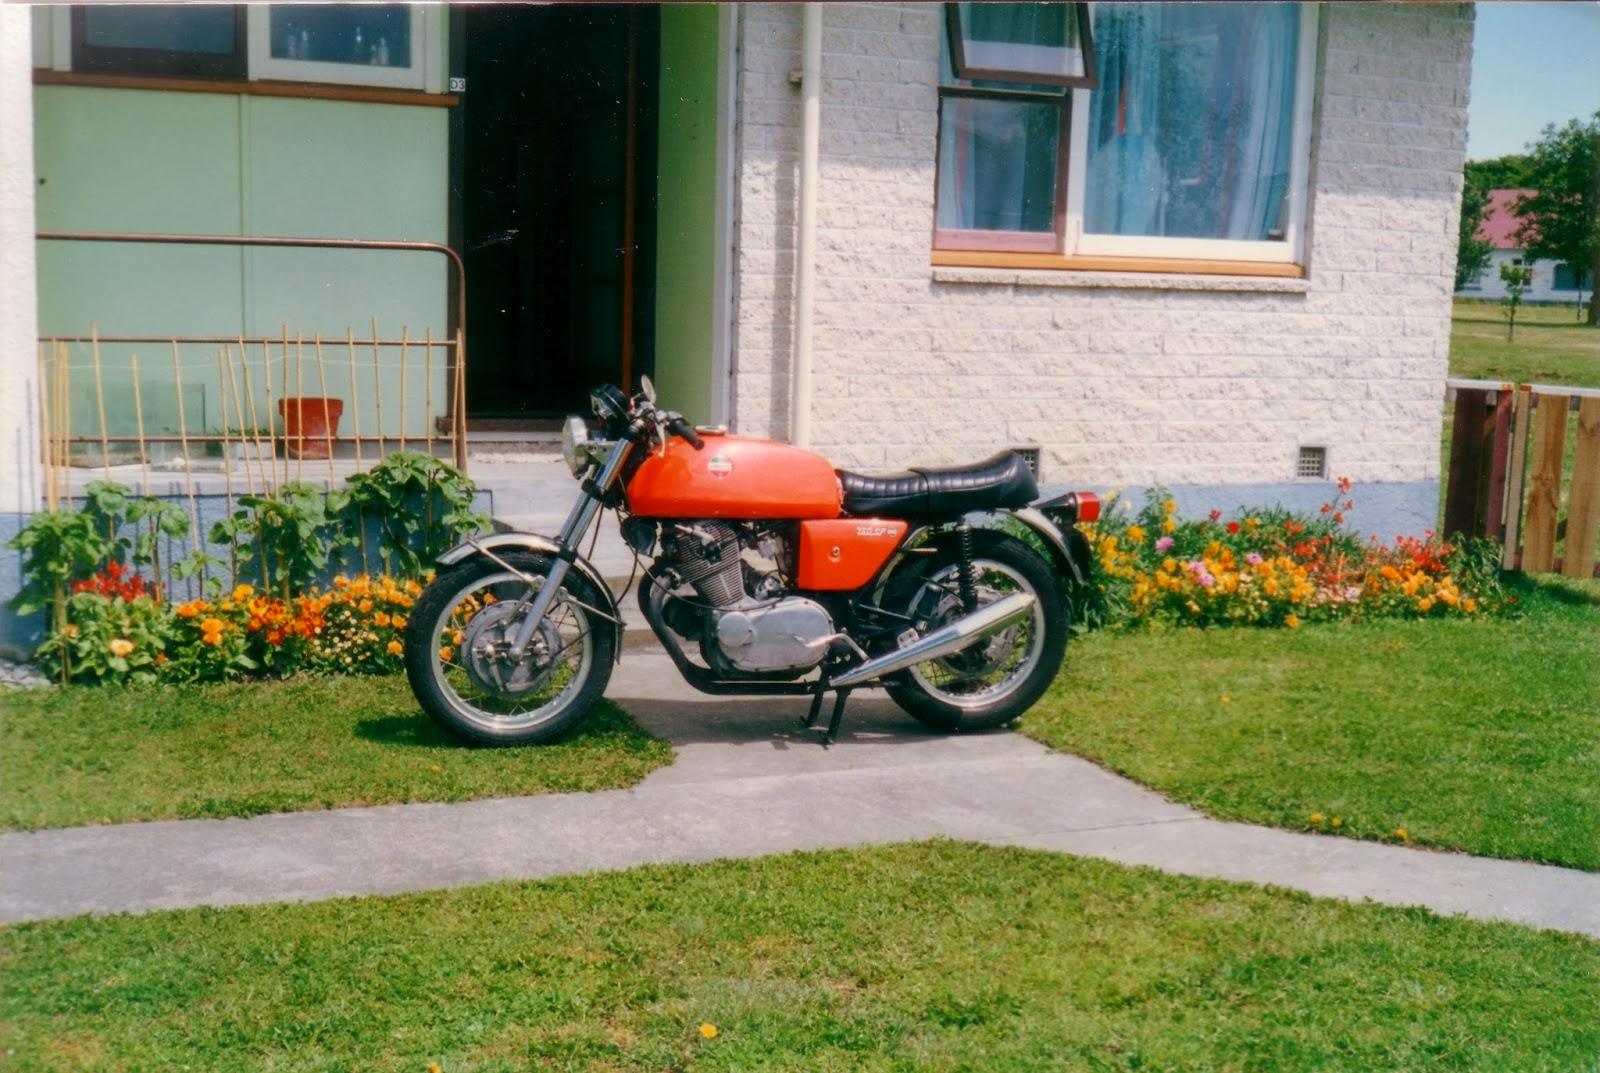 medium resolution of my 1971 laverda 750 sf1 with the dual seat